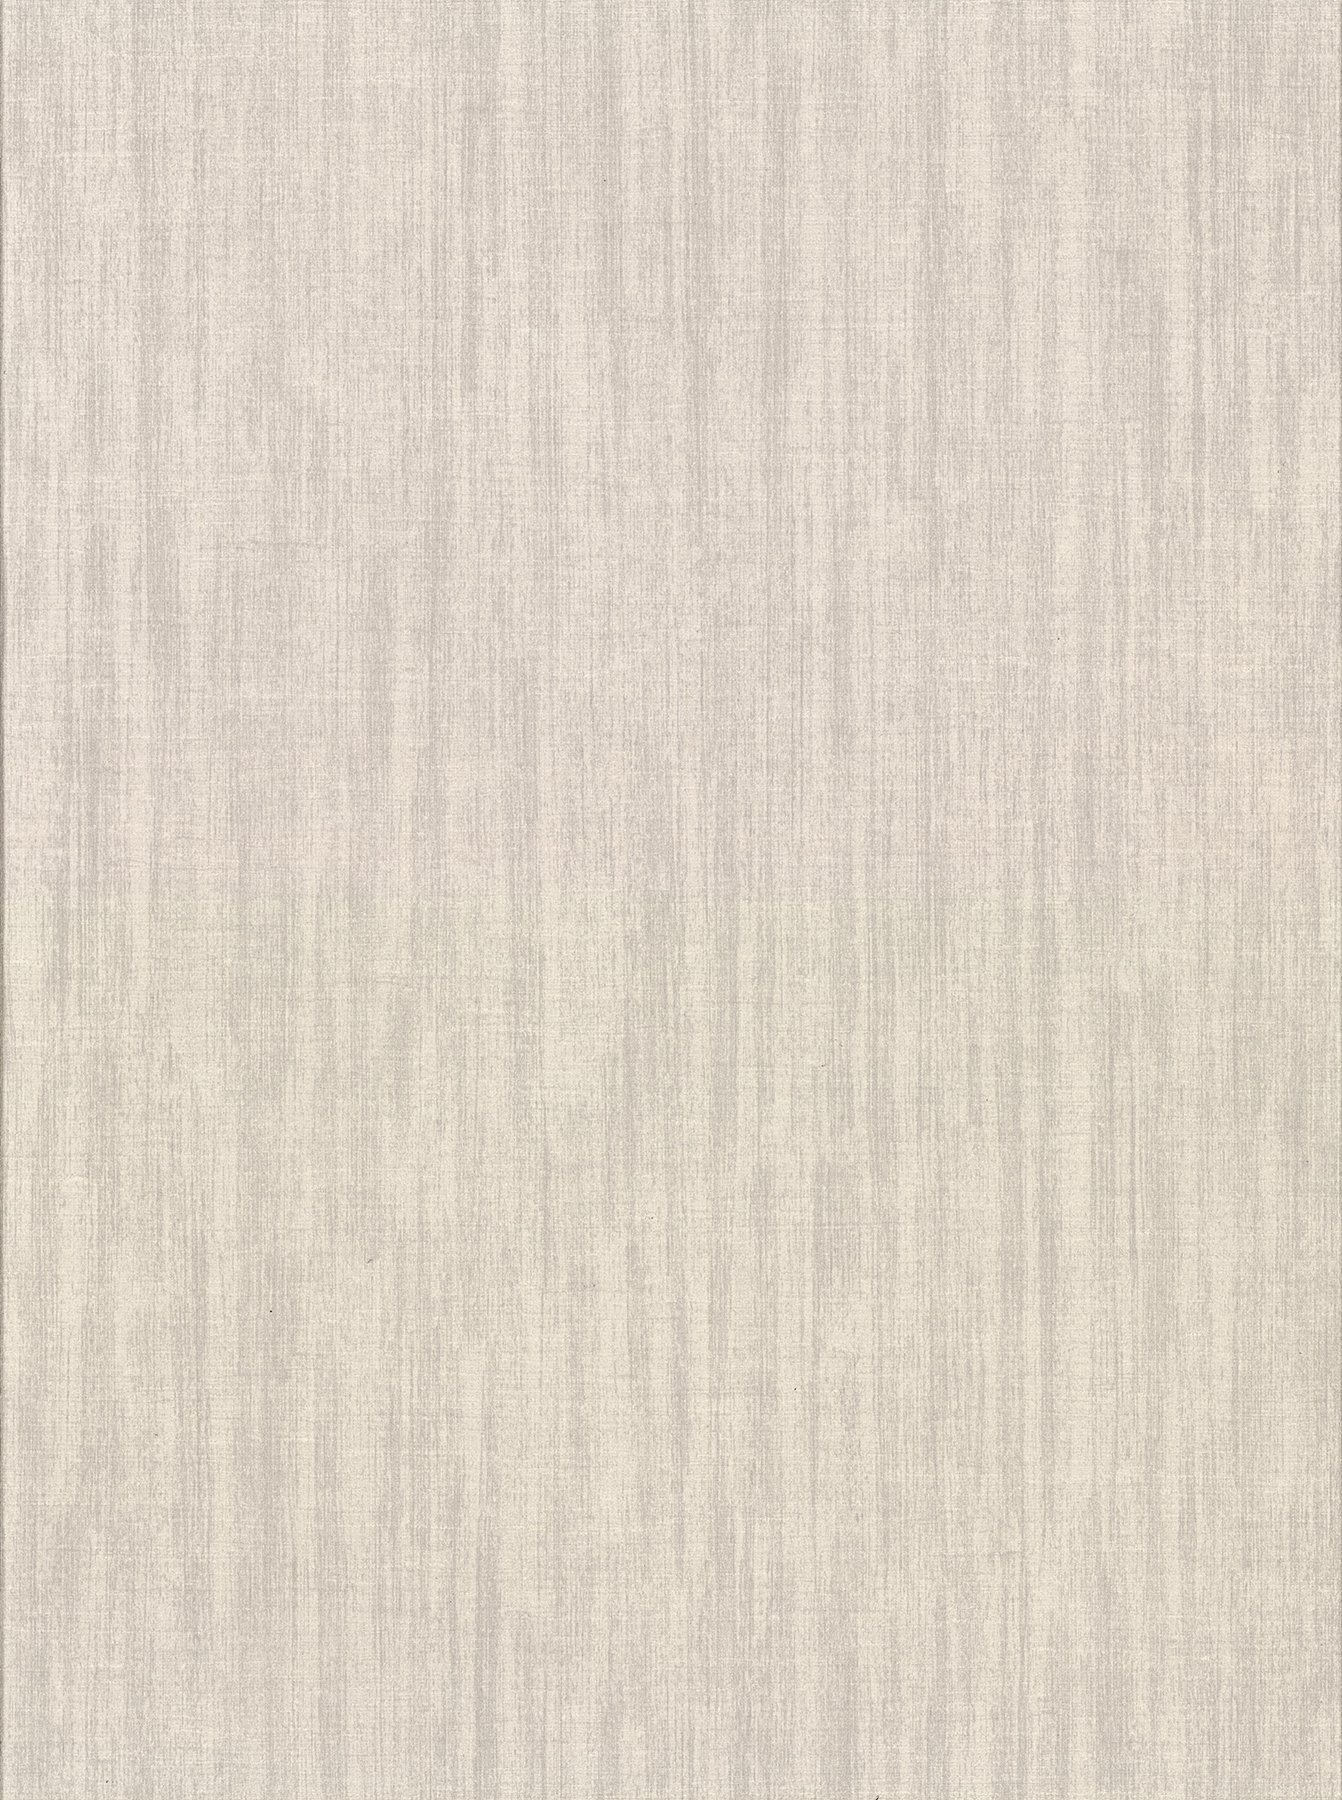 Picture of Brubeck Bone Distressed Texture Wallpaper